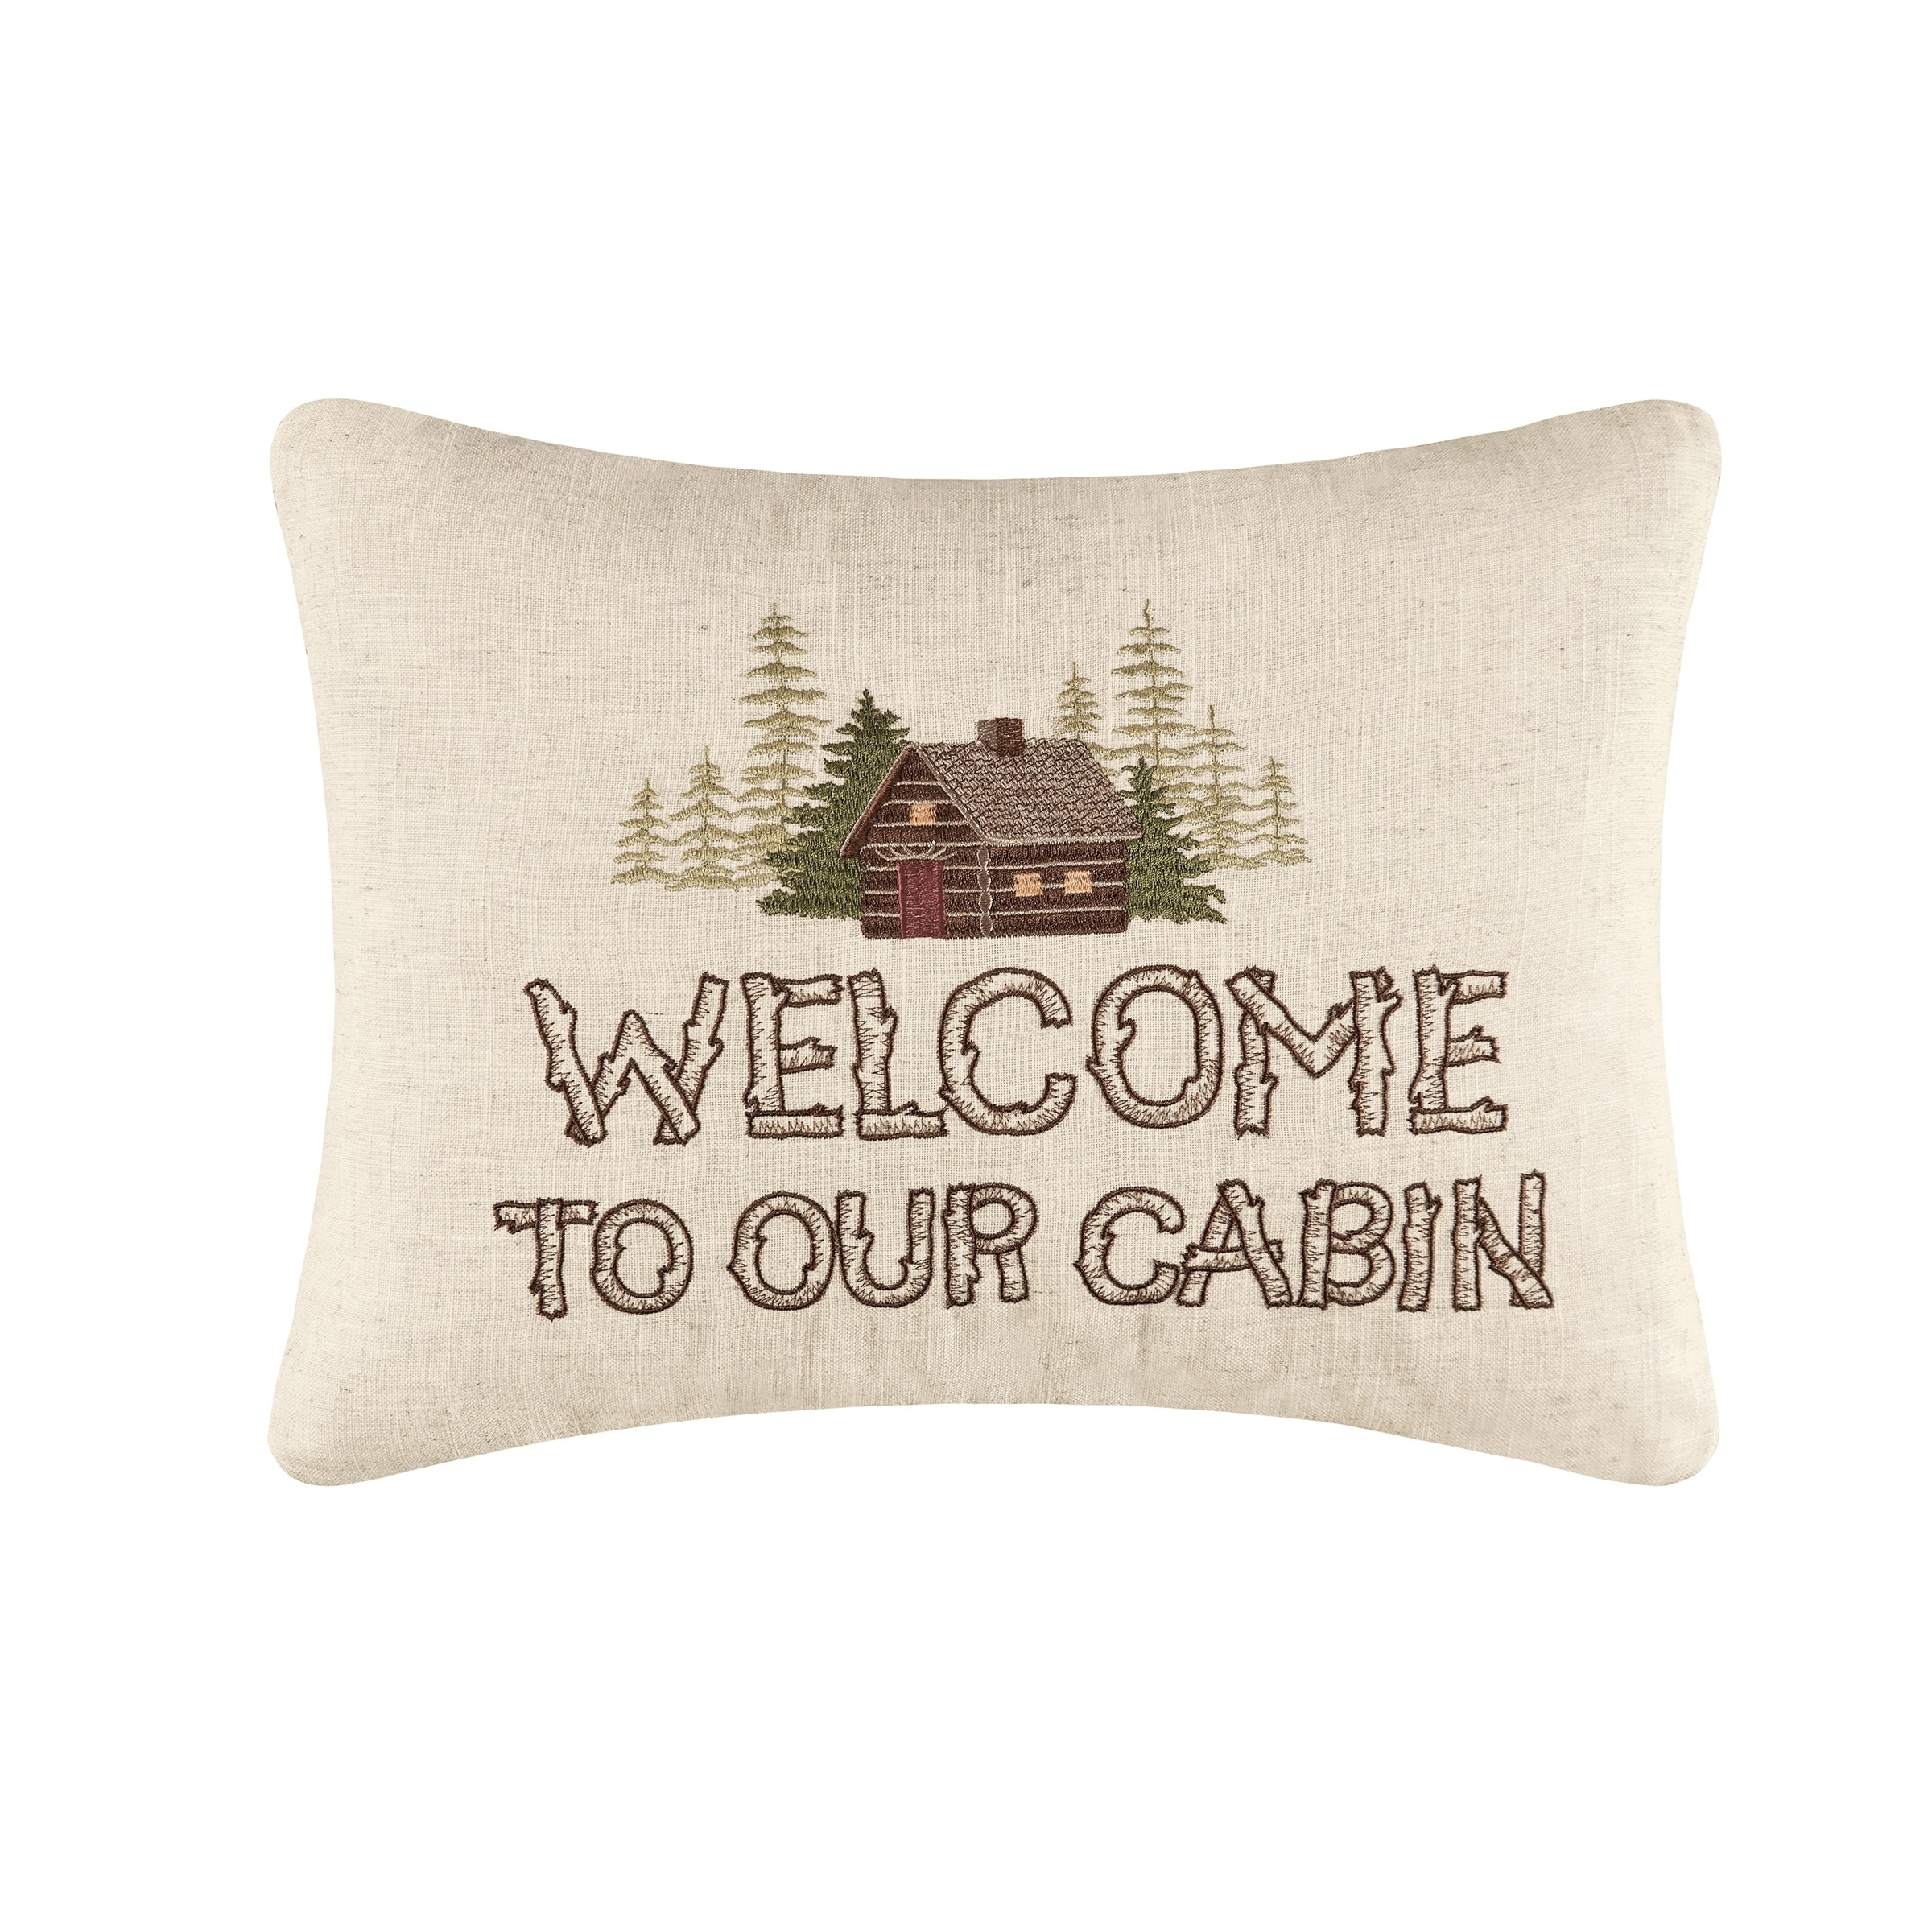 Our Cabin Embroidered 14 x 18 Pillow